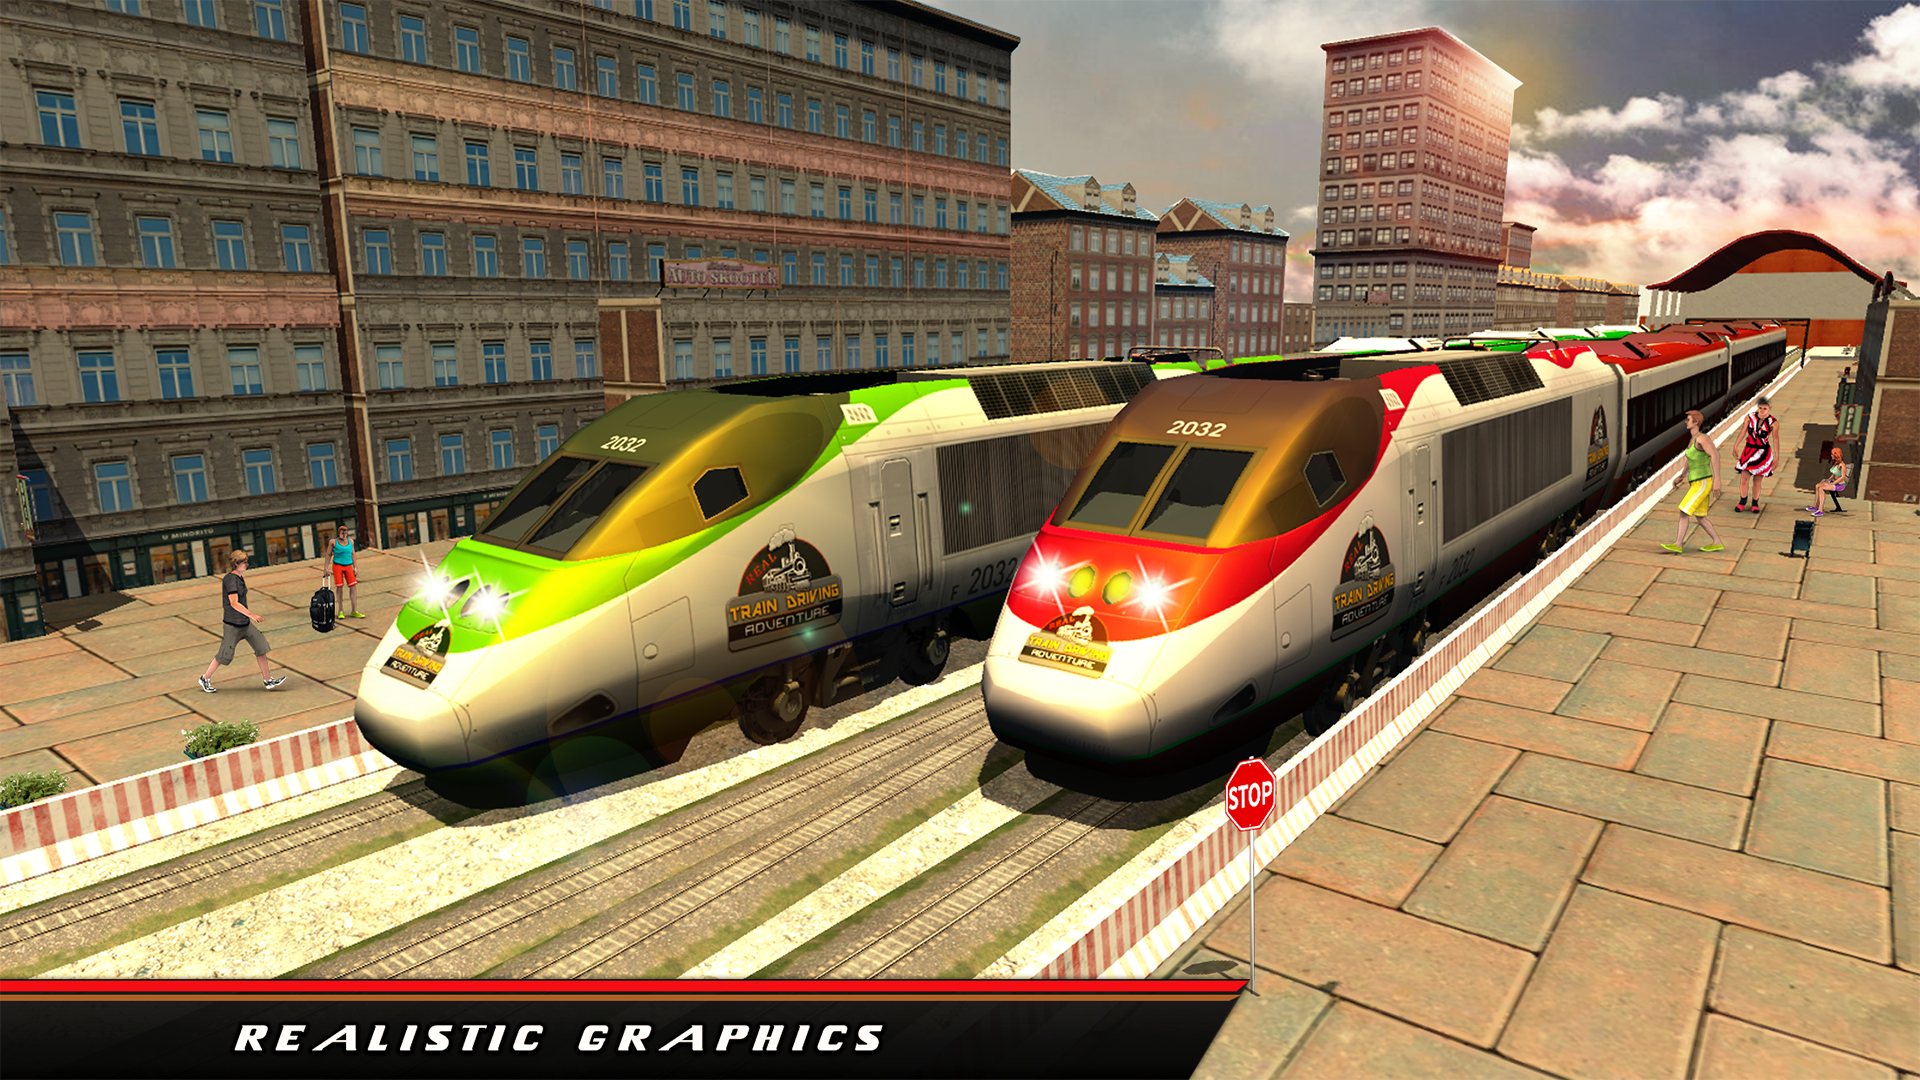 Train Engine Simulator Games Free - Driving Games: Amazon co